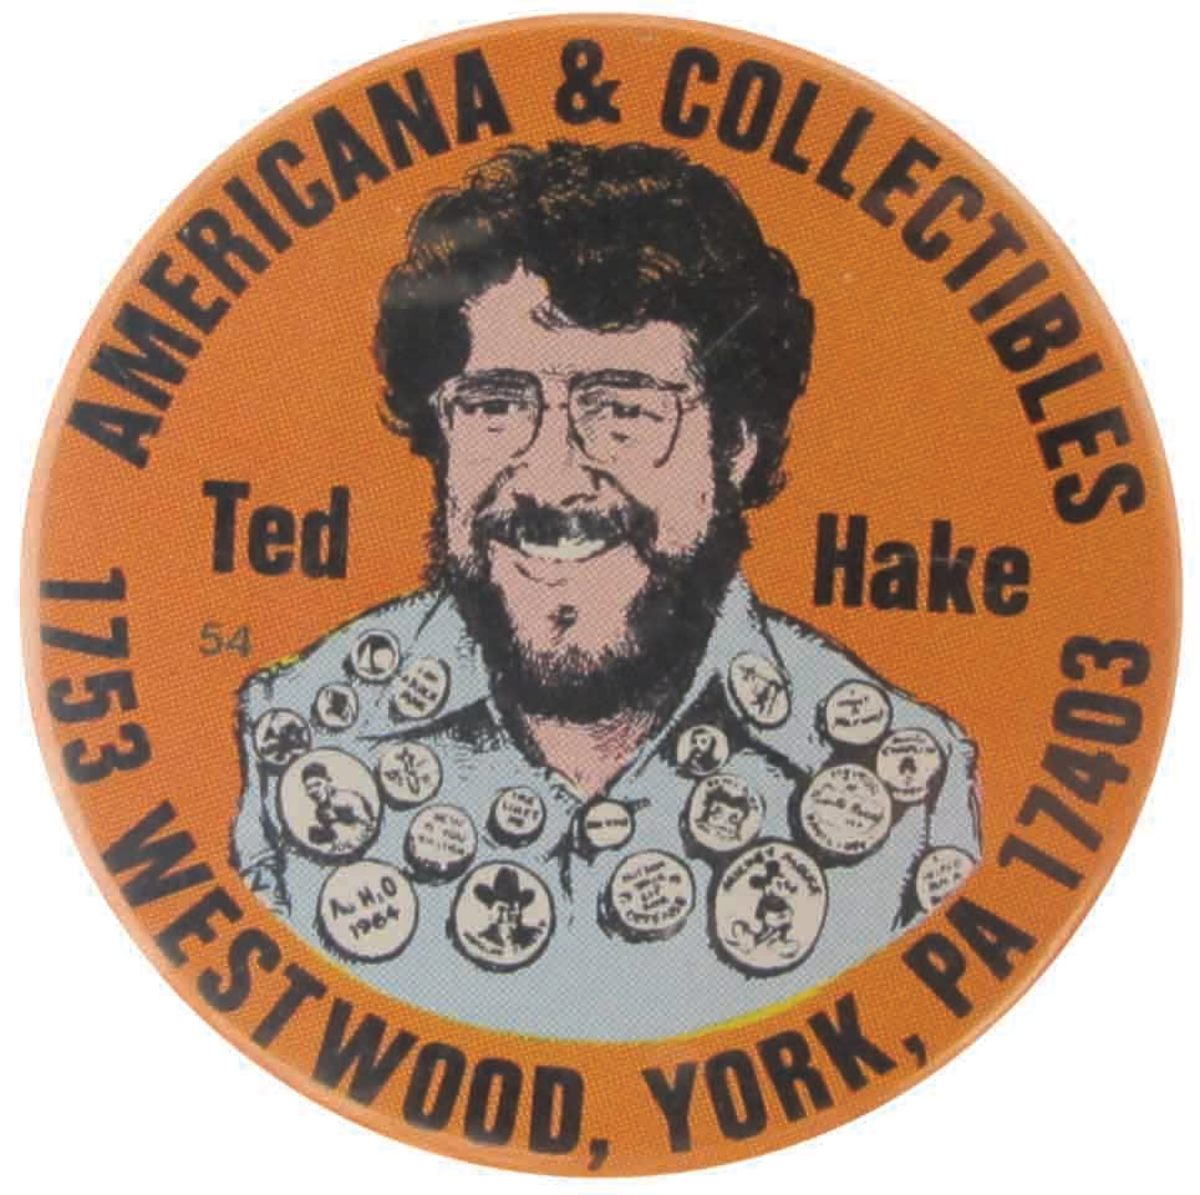 Ted Hake's Americana & Collectibles button, 1975